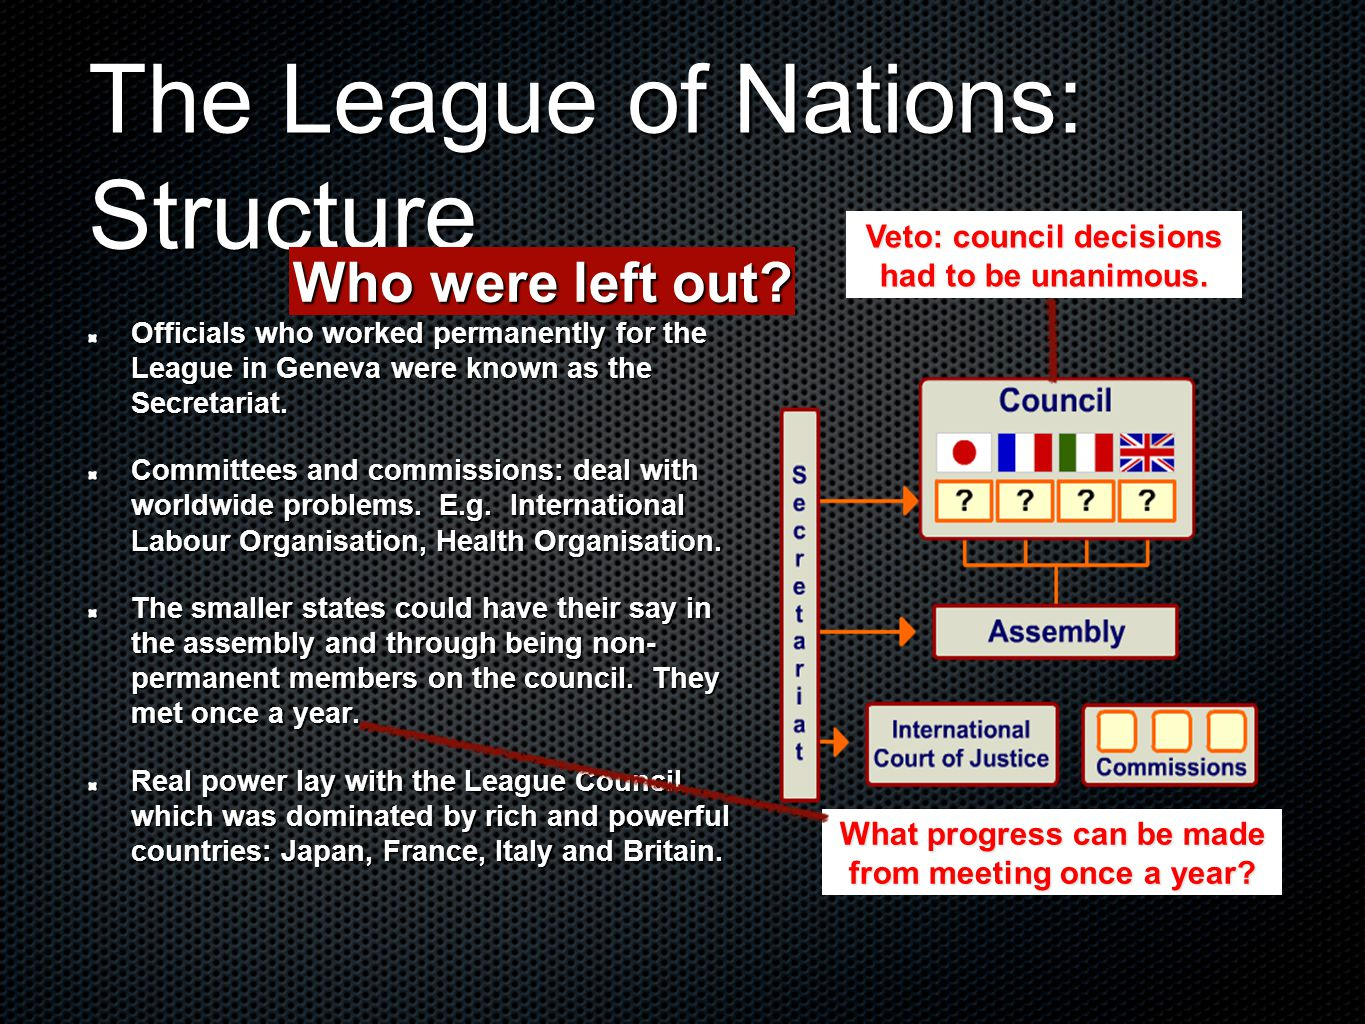 The League of Nations: Structure